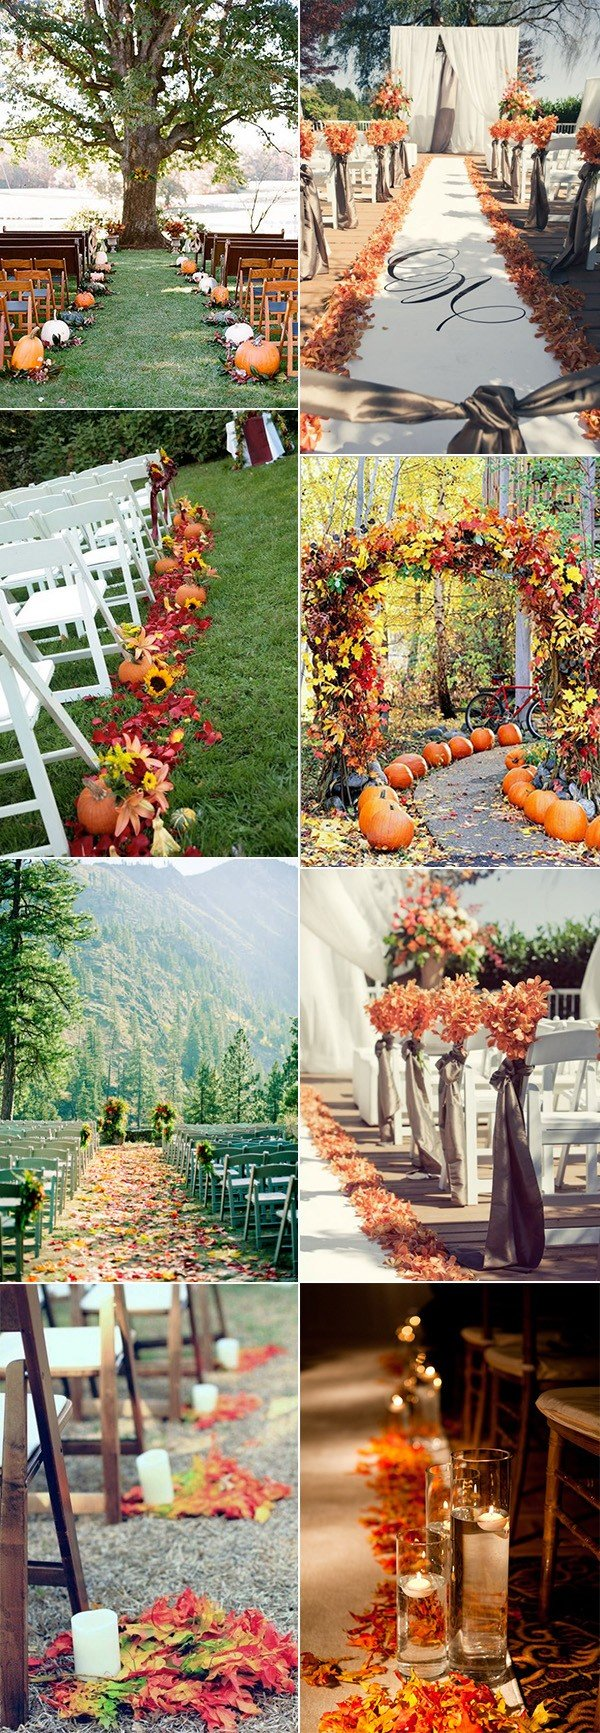 autumn wedding decor 70 amazing fall wedding ideas for 2018 oh best day 1400